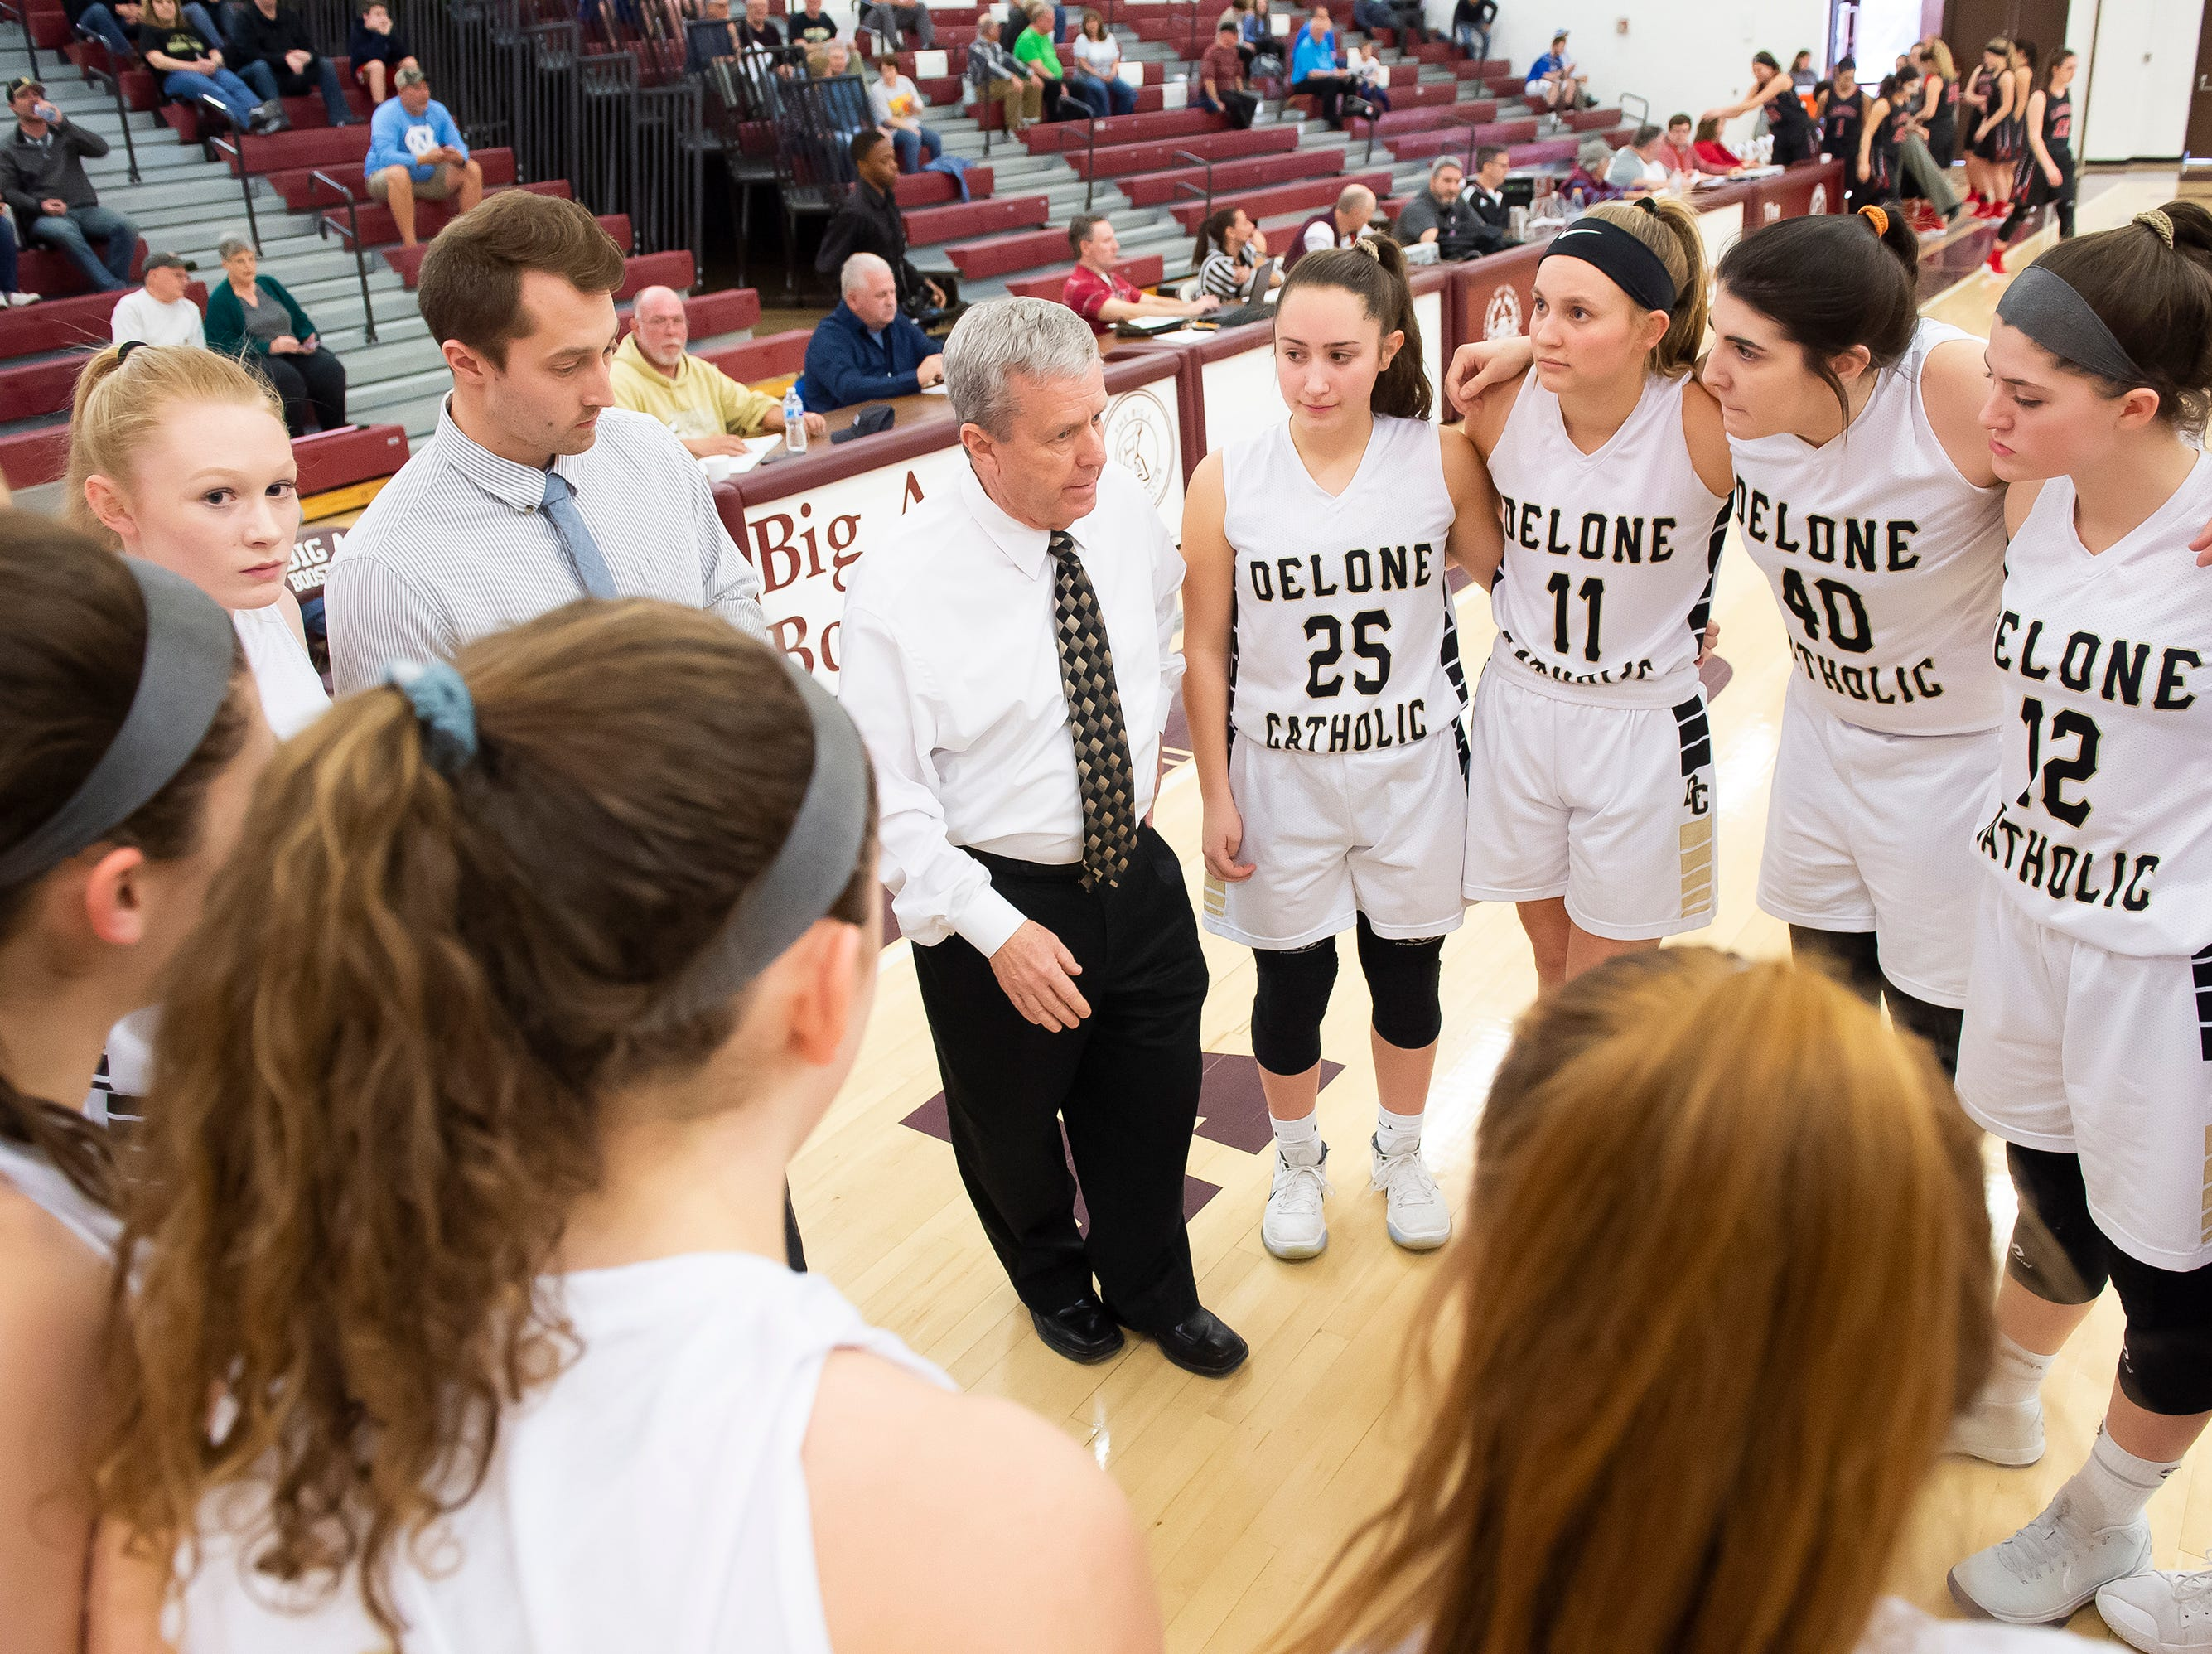 Delone Catholic head coach Gerry Eckenrode speaks with his team prior to a PIAA 3A quarterfinal game against Neshannock in Altoona, Pa., on Friday, March 15, 2019. The Squirettes won 50-41.